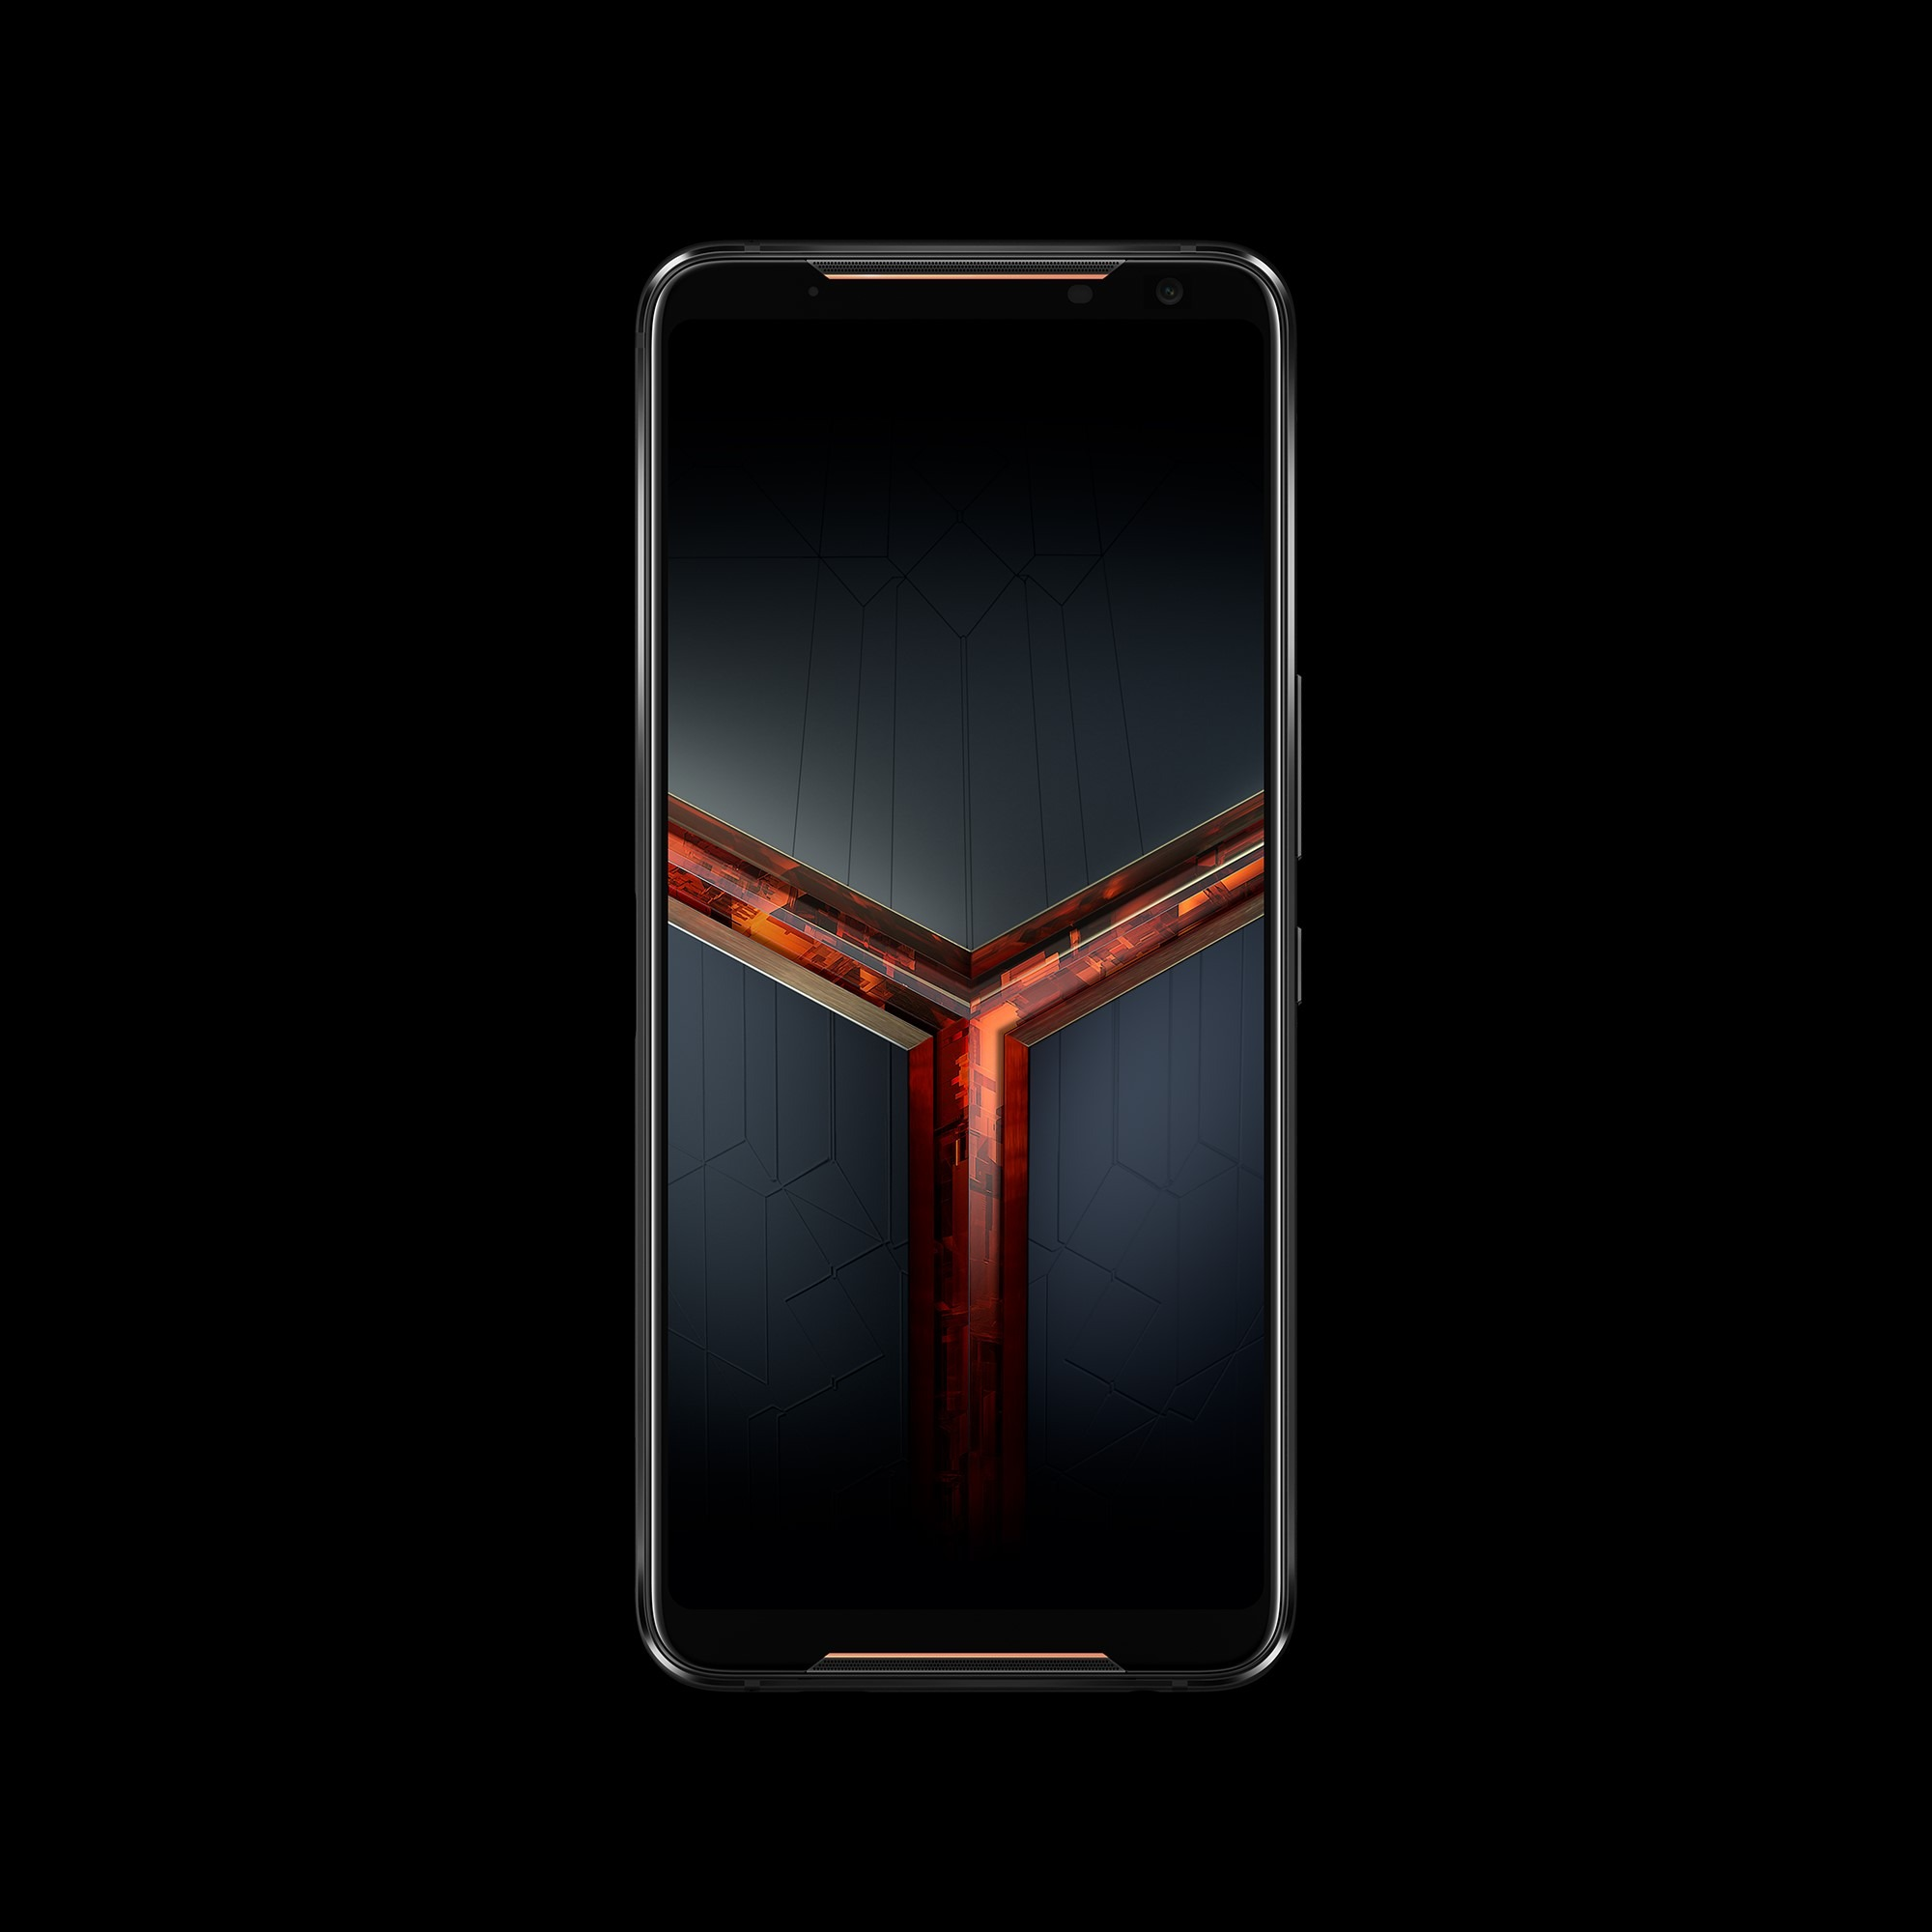 Expected Price, Features, Sale & Specifications of Asus' New Gaming Smartphone